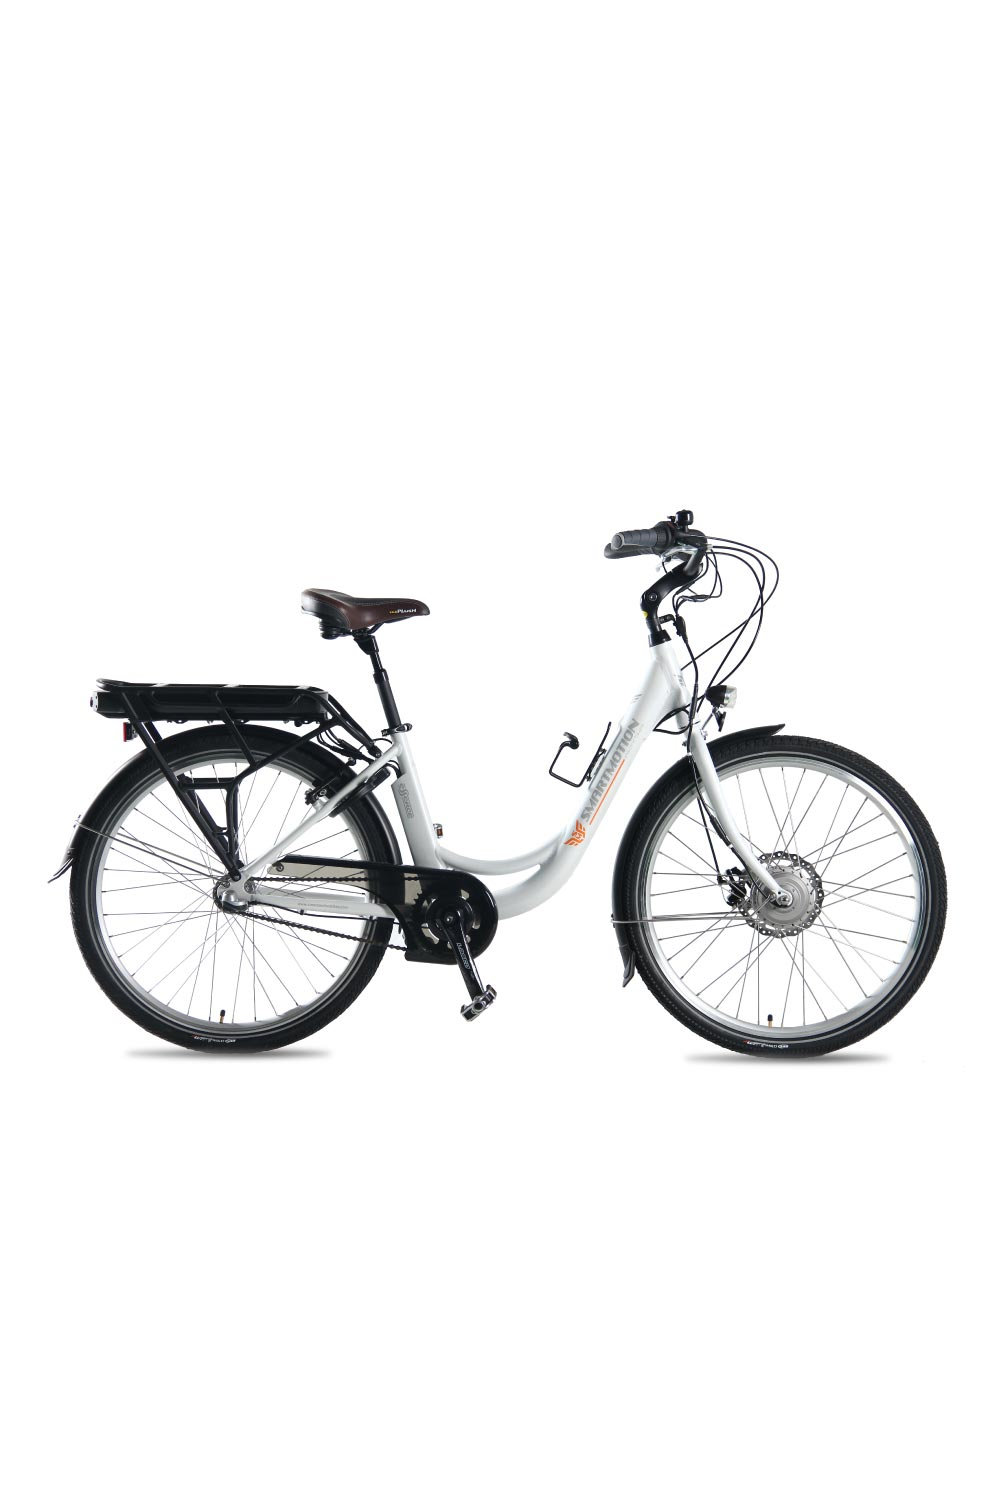 SMARTMOTION ESSENCE E-BIKE | Buy e-bikes Newcastle